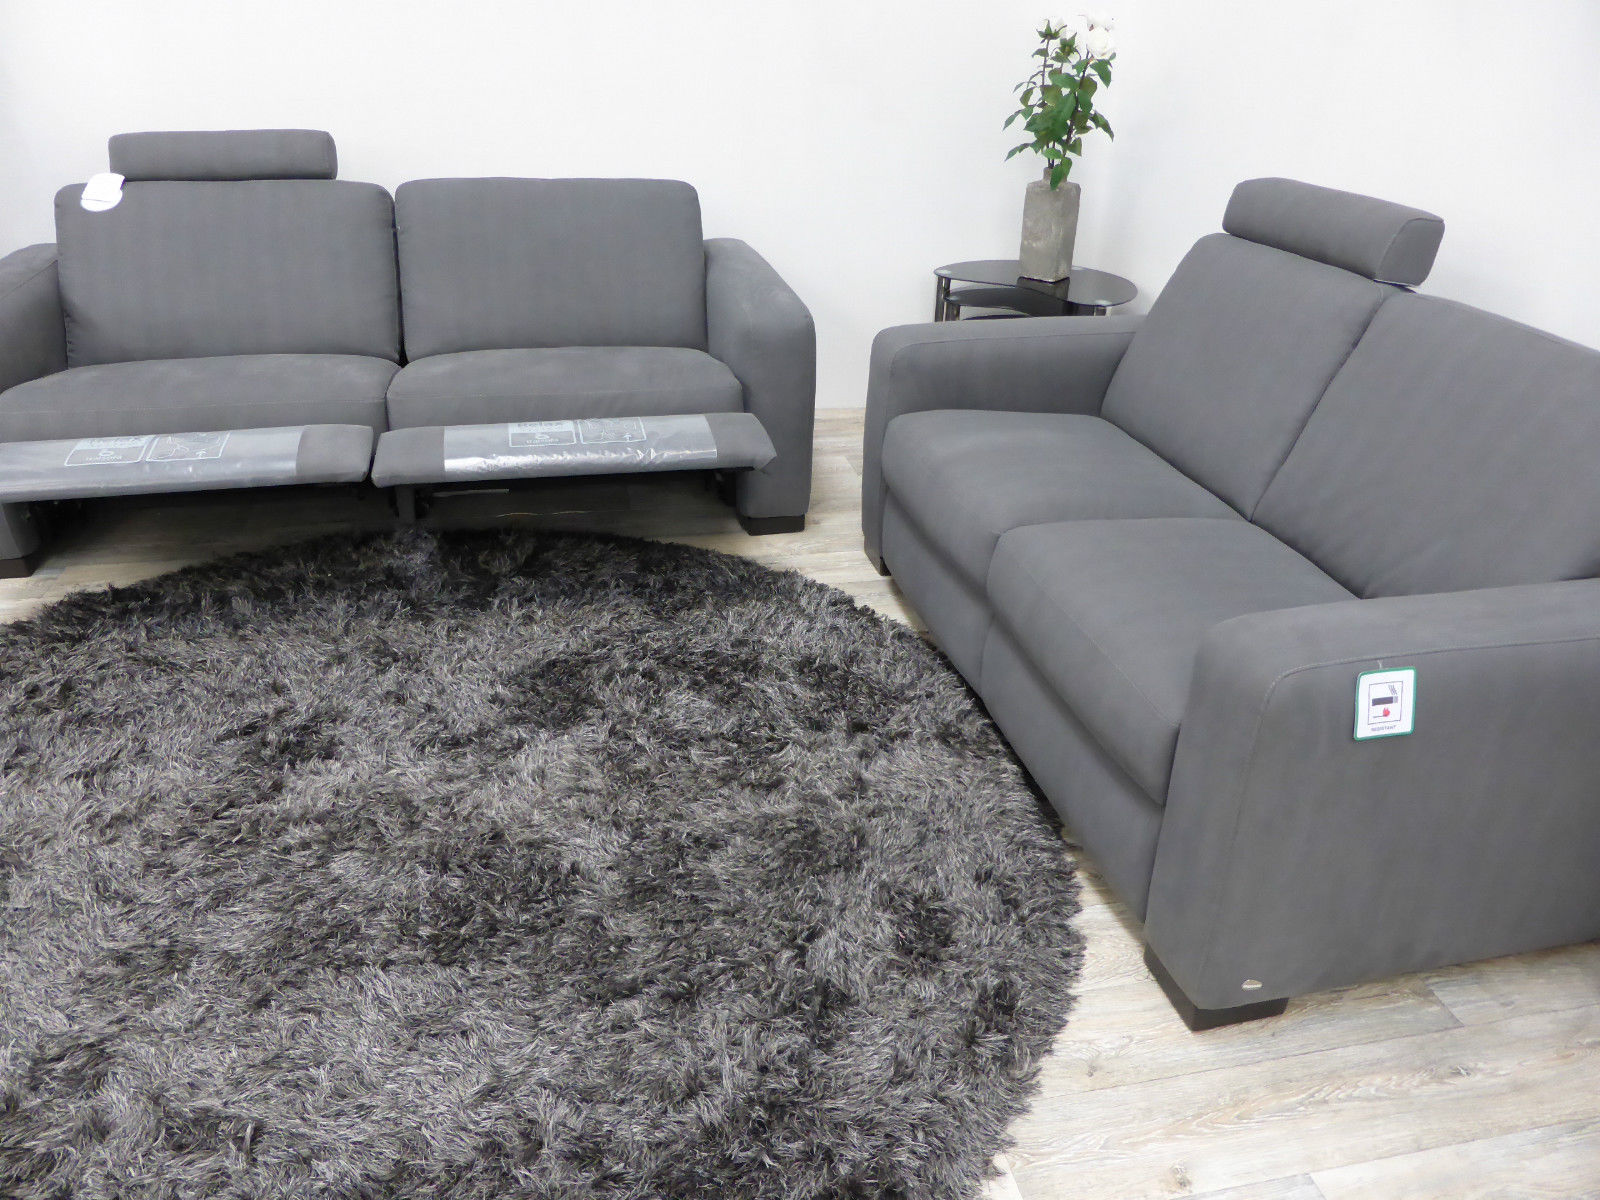 Italsofa Bridge 3 Seater Recliner And 2 Seater Static Furnimax Brands Outlet